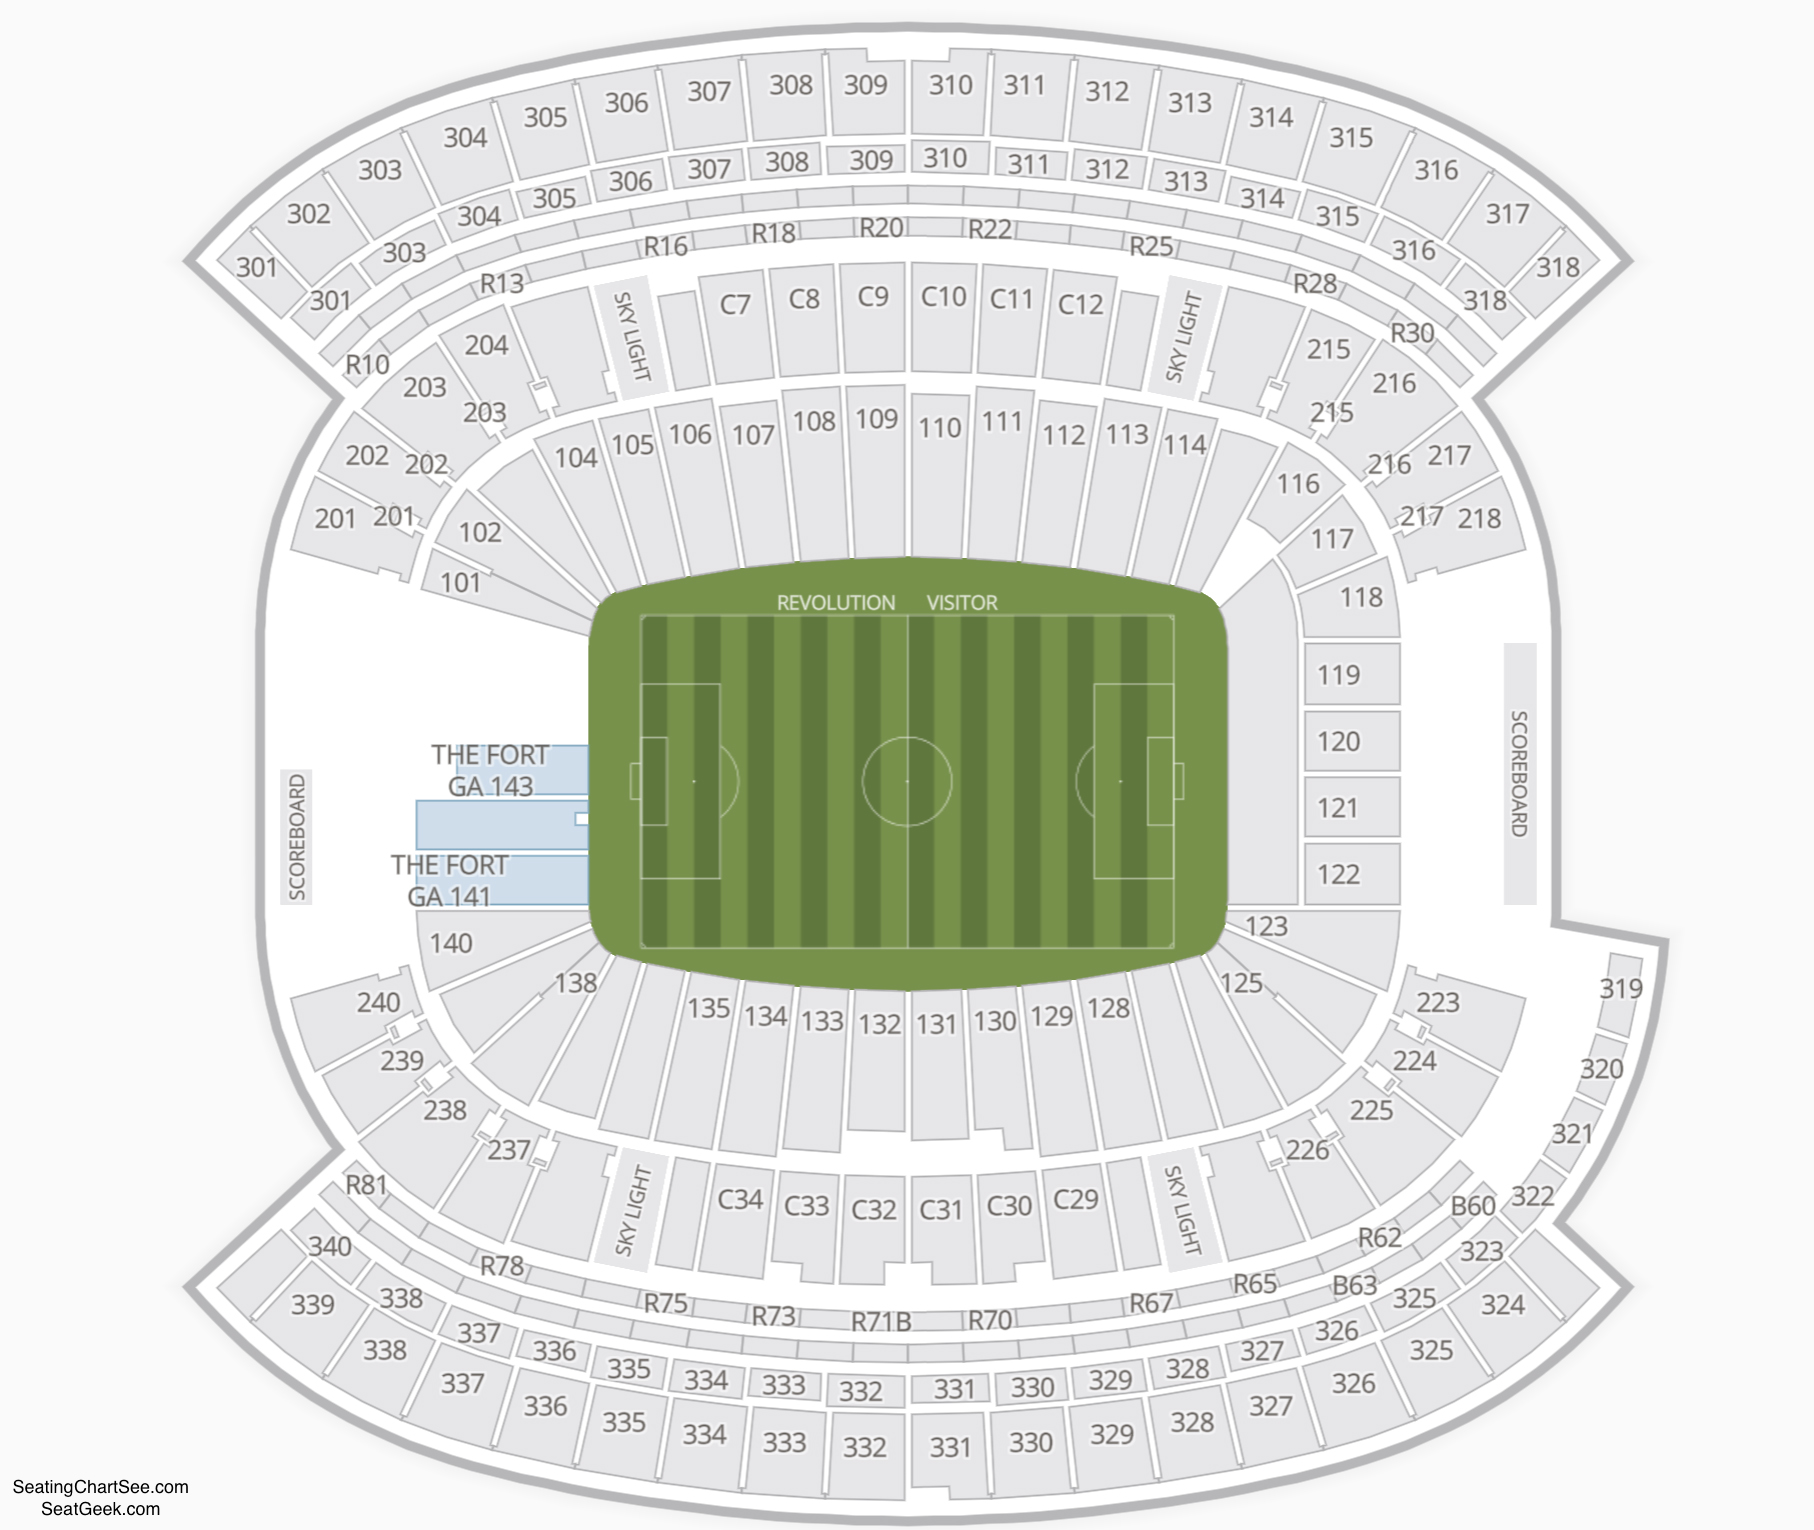 Gillette Stadium Seating Charts Views Games Answers Cheats